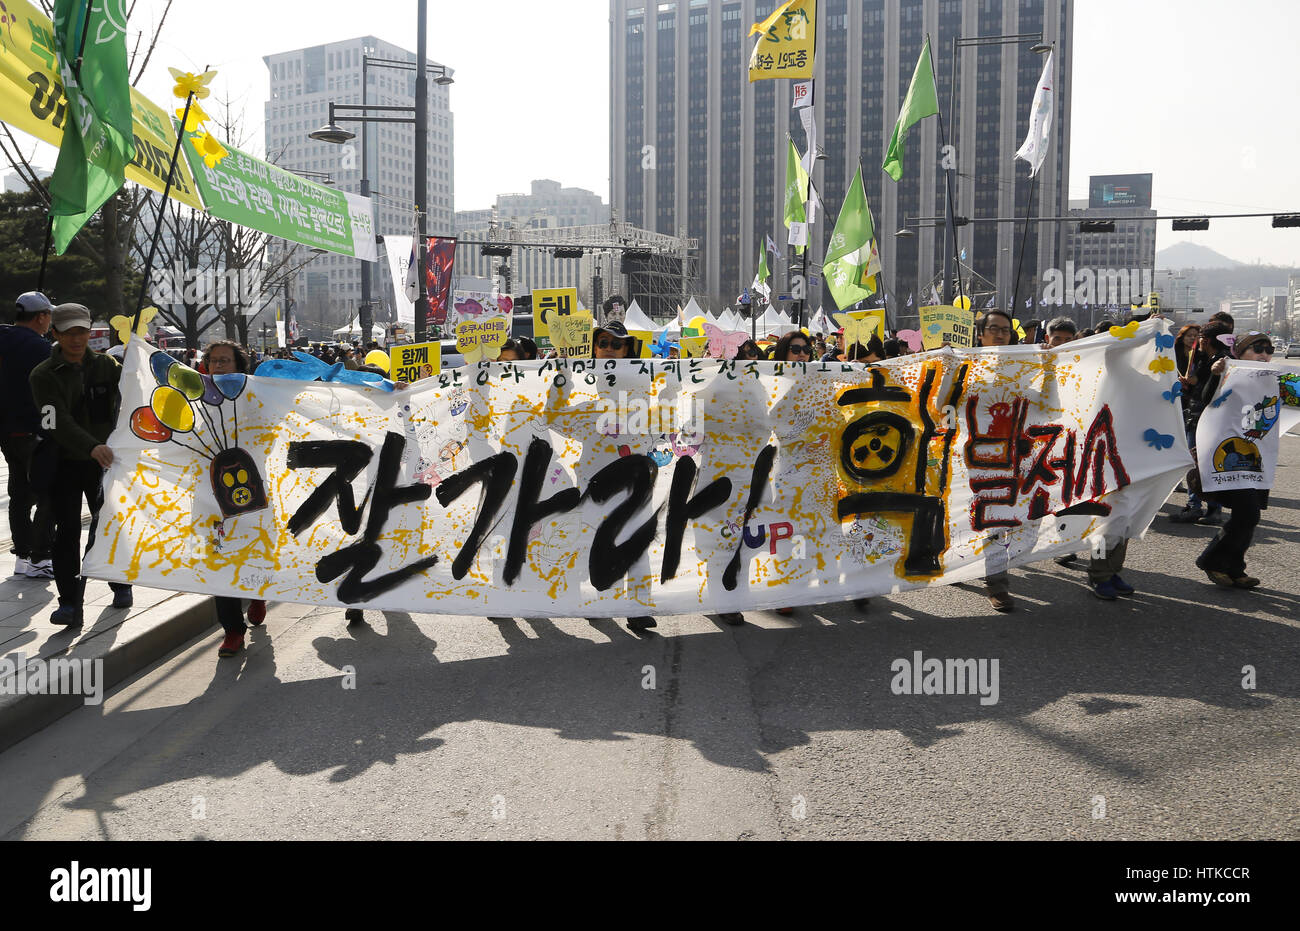 The sixth anniversary of the 2011 Fukushima nuclear disaster, Mar 11, 2017 : People march during a memorial rally - Stock Image